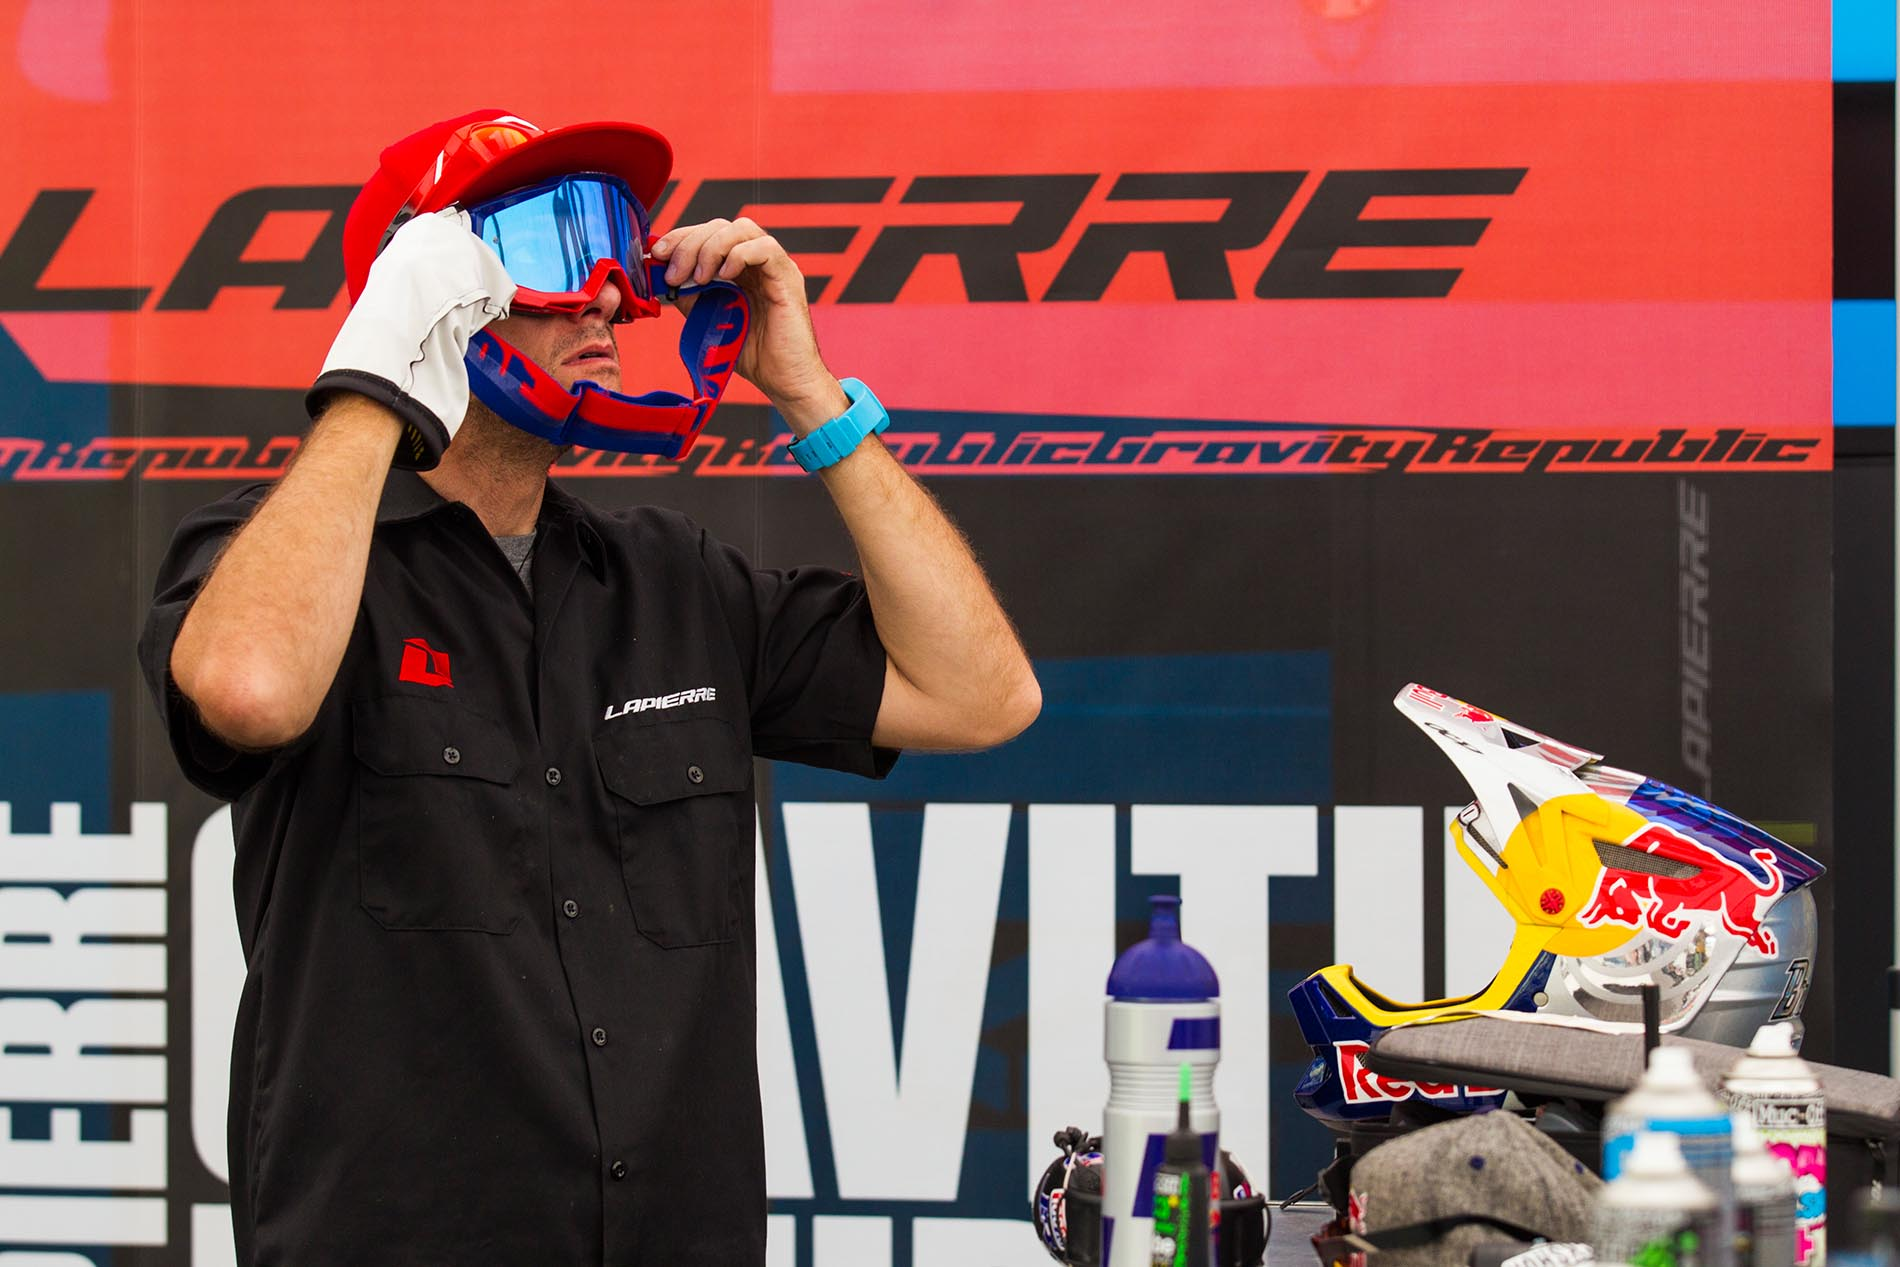 Loic's mechanic is even responsible for the cleanliness of his eyewear.